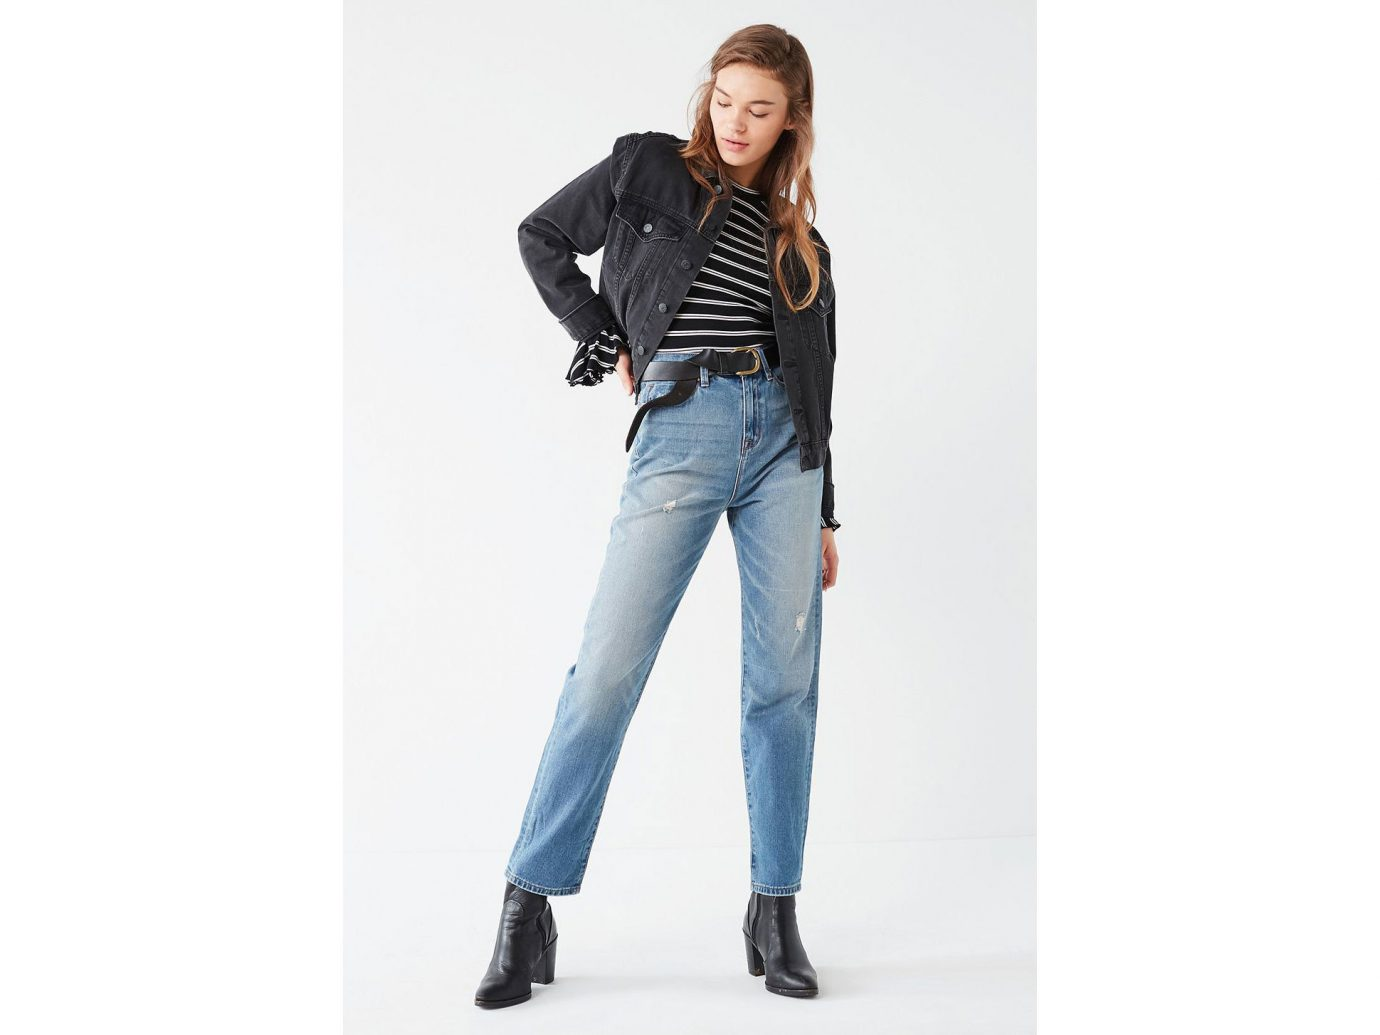 Travel Shop Travel Trends jeans fashion model person denim waist shoulder trousers joint trouser electric blue posing abdomen shoe